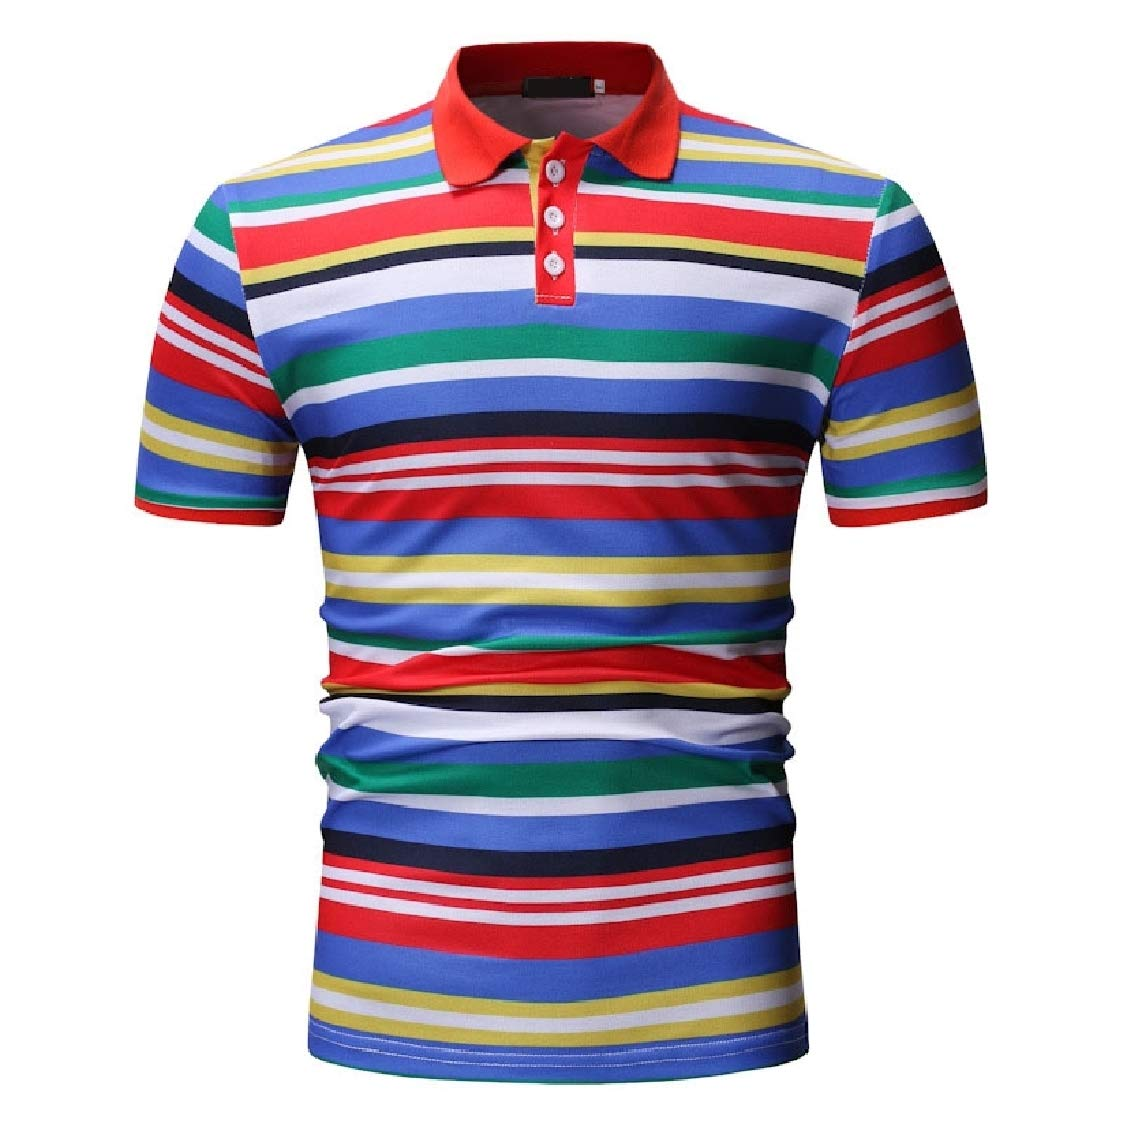 DressUMen Chic Soft Ombre Turn Down Collar Short-Sleeve Stripes Printed Polo Shirt